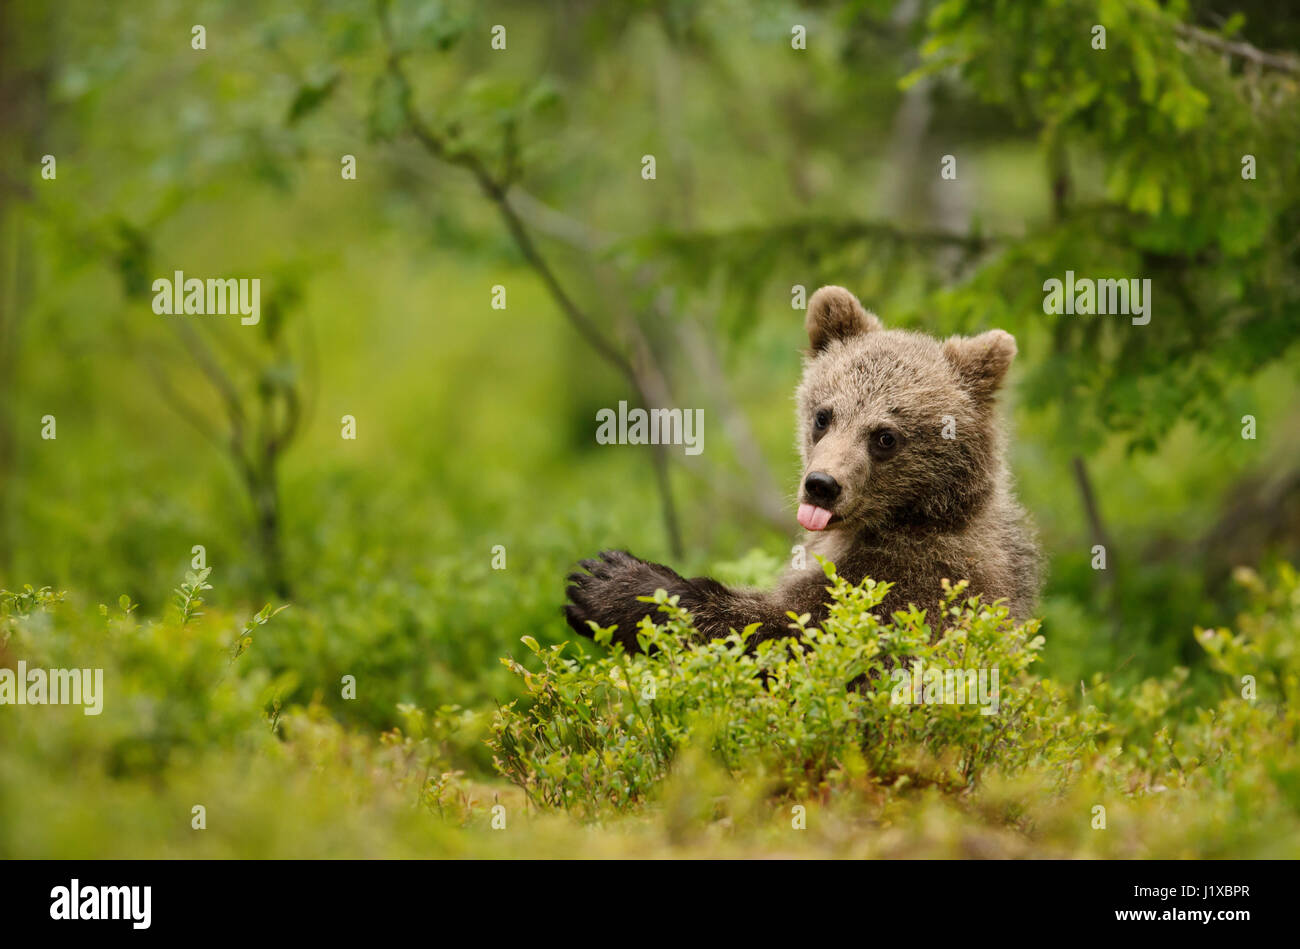 Brown bear cub sticking out the tong - Stock Image